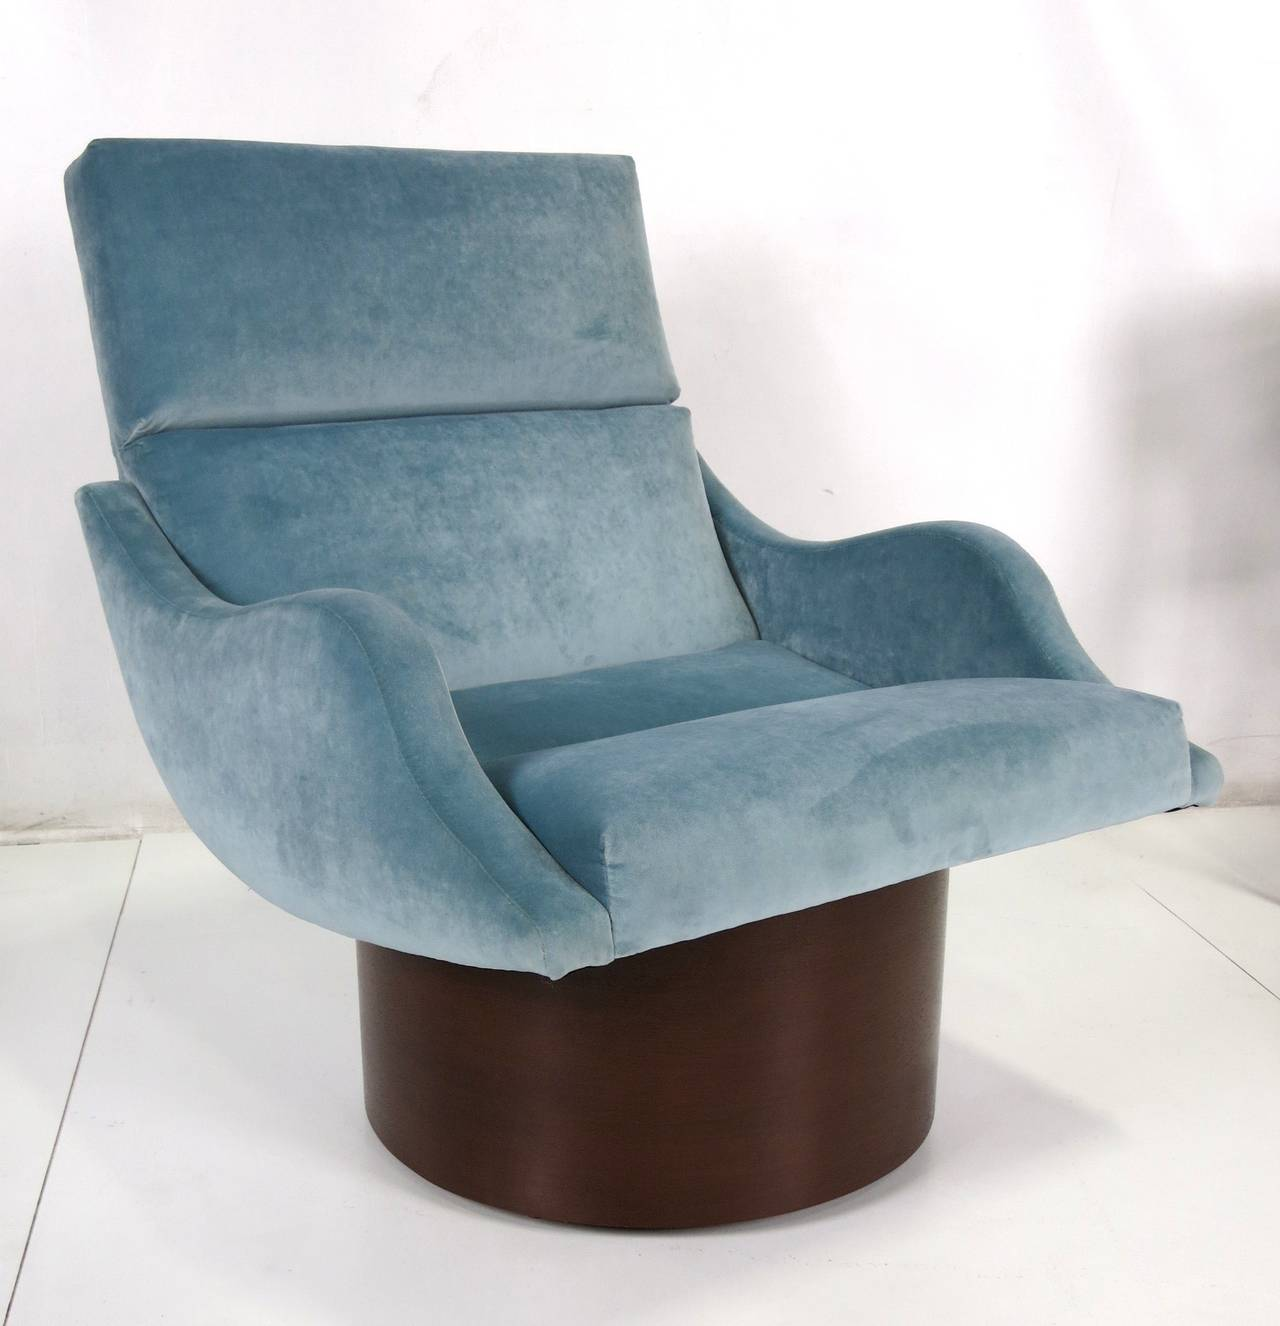 Upholstery Pair of Swivel Lounge Chairs